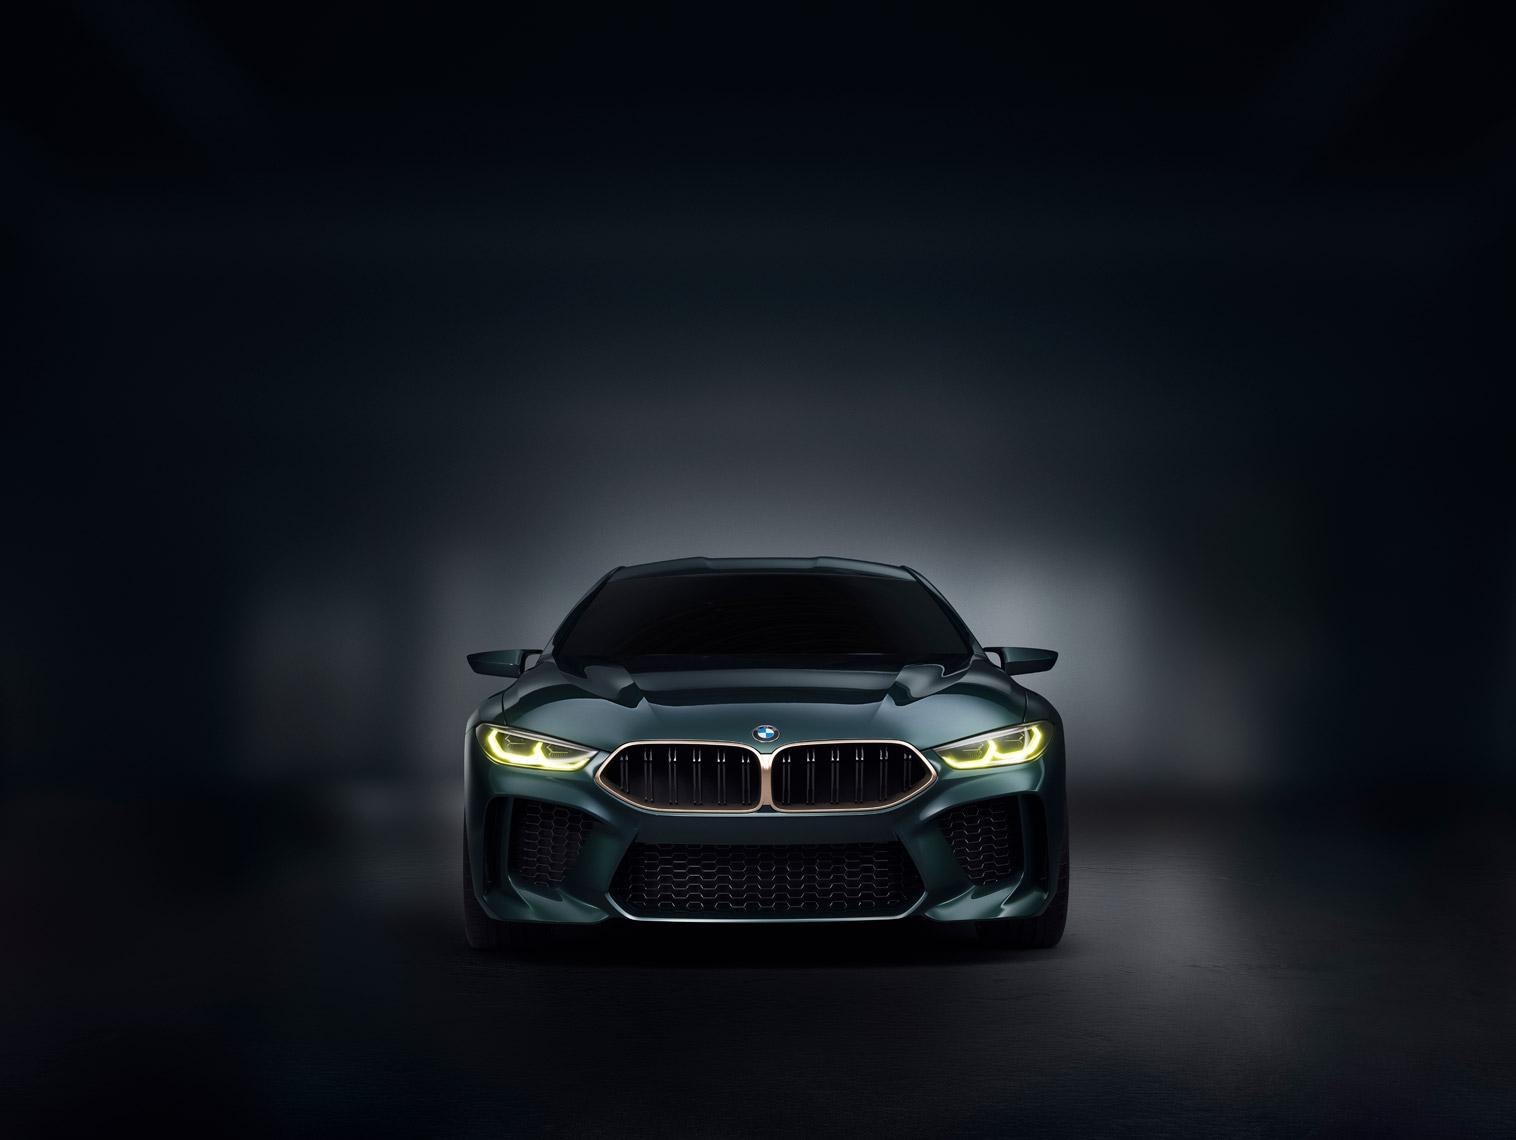 hellotpd_Xisco_Fuster_BMW_Front-Profile_HR_RGB